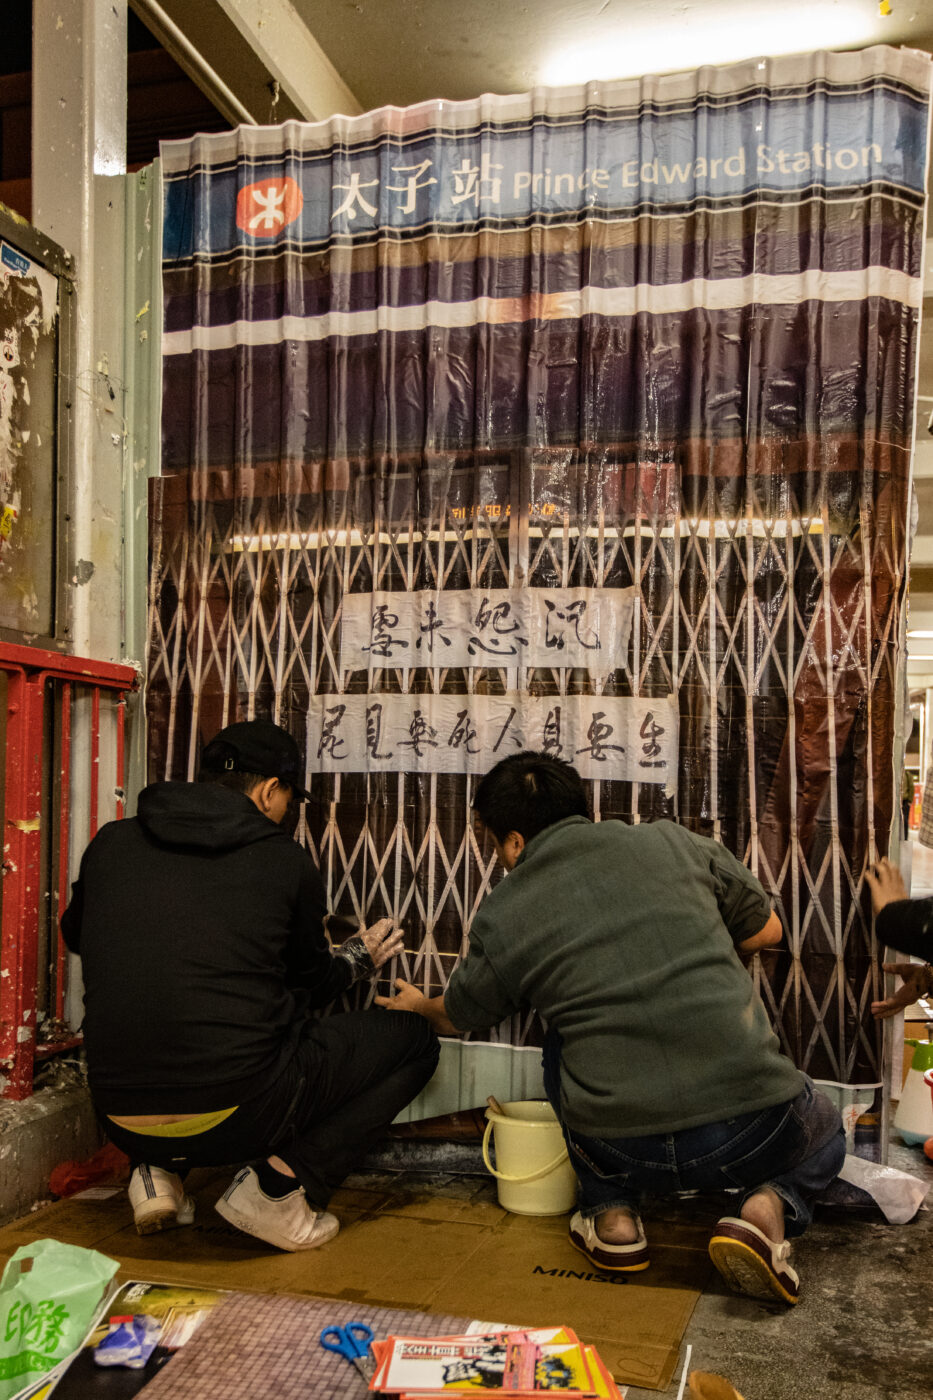 Two Hong Kong protesters glue a life-size photo of the Prince Edward MTR station to the side of a construction shed.